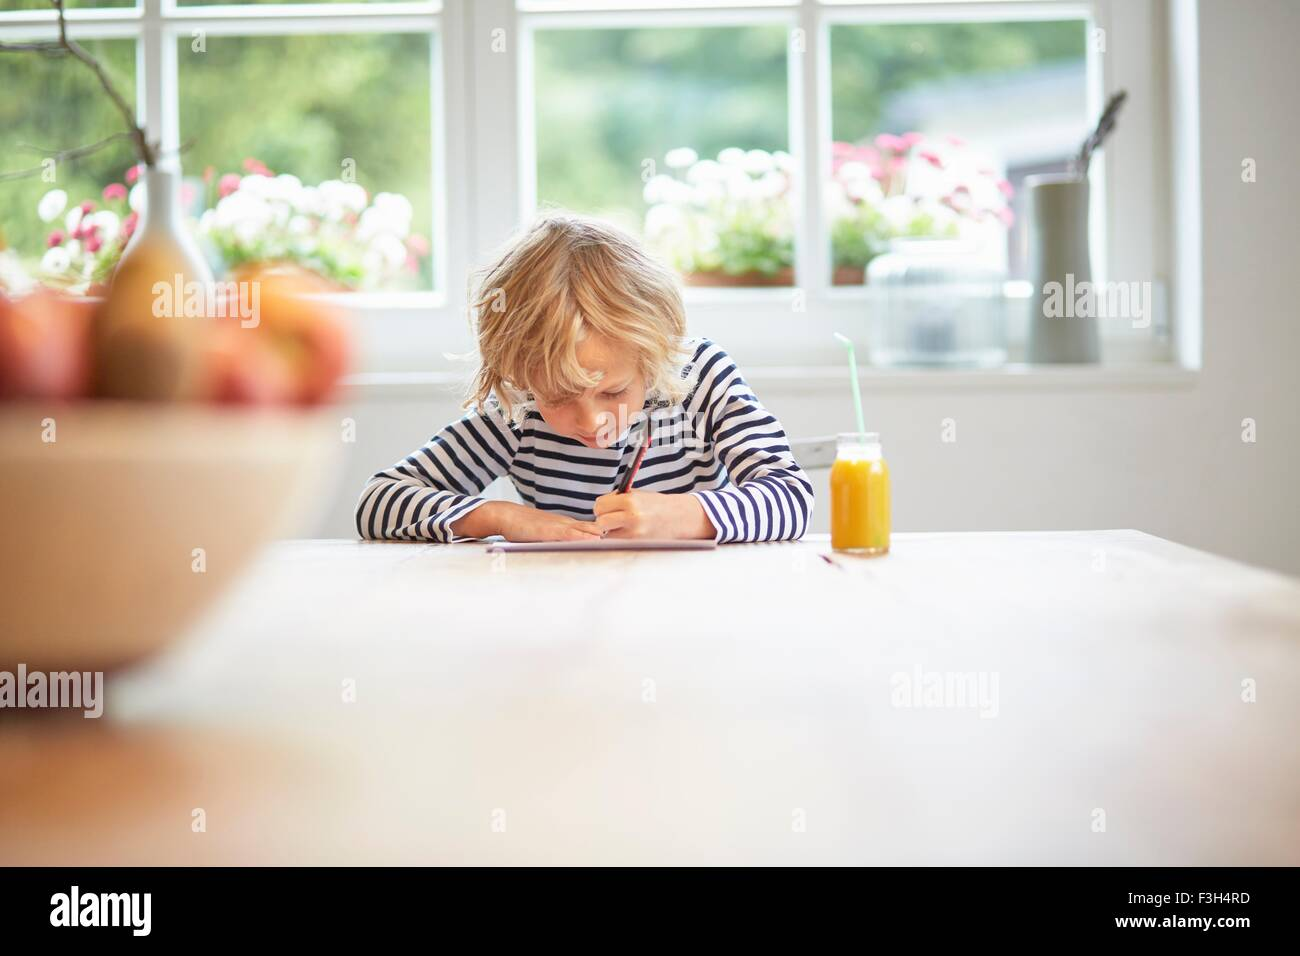 Young boy sitting at table, writing - Stock Image